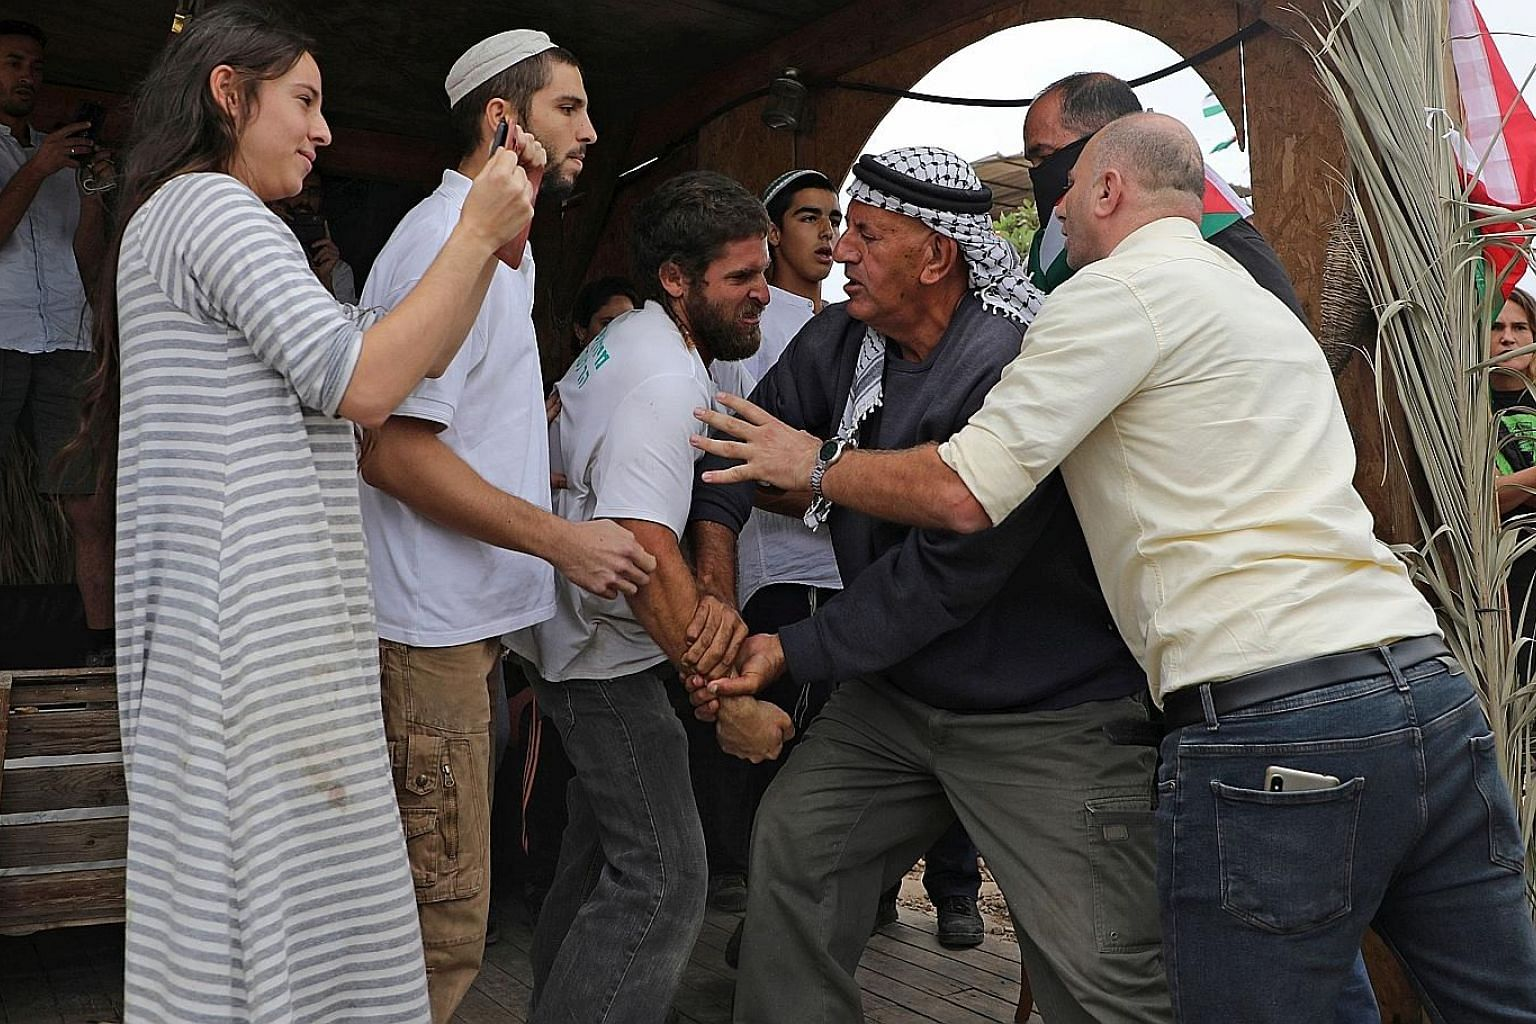 Israelis clashing with Palestinians on Oct 26 at a protest against the setting-up of an Israeli outpost in the Jordan Valley. PHOTO: AGENCE FRANCE-PRESSE